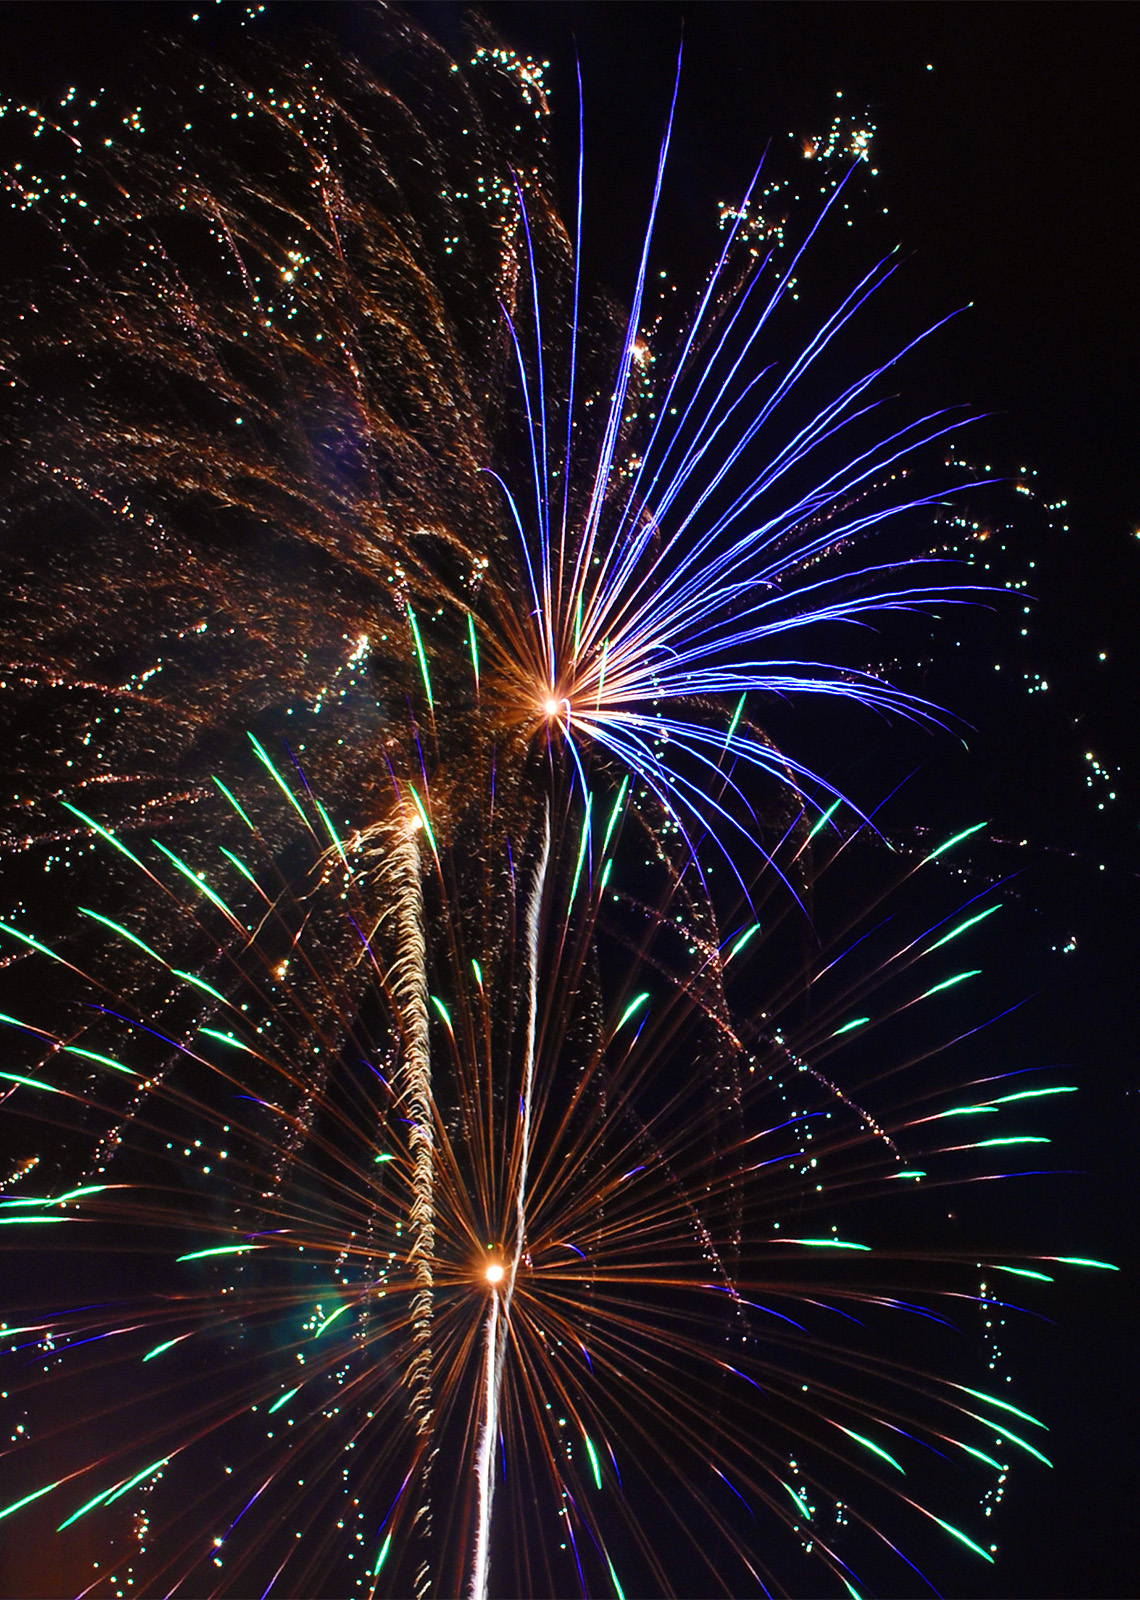 Learn how to shoot fireworks with your camera.